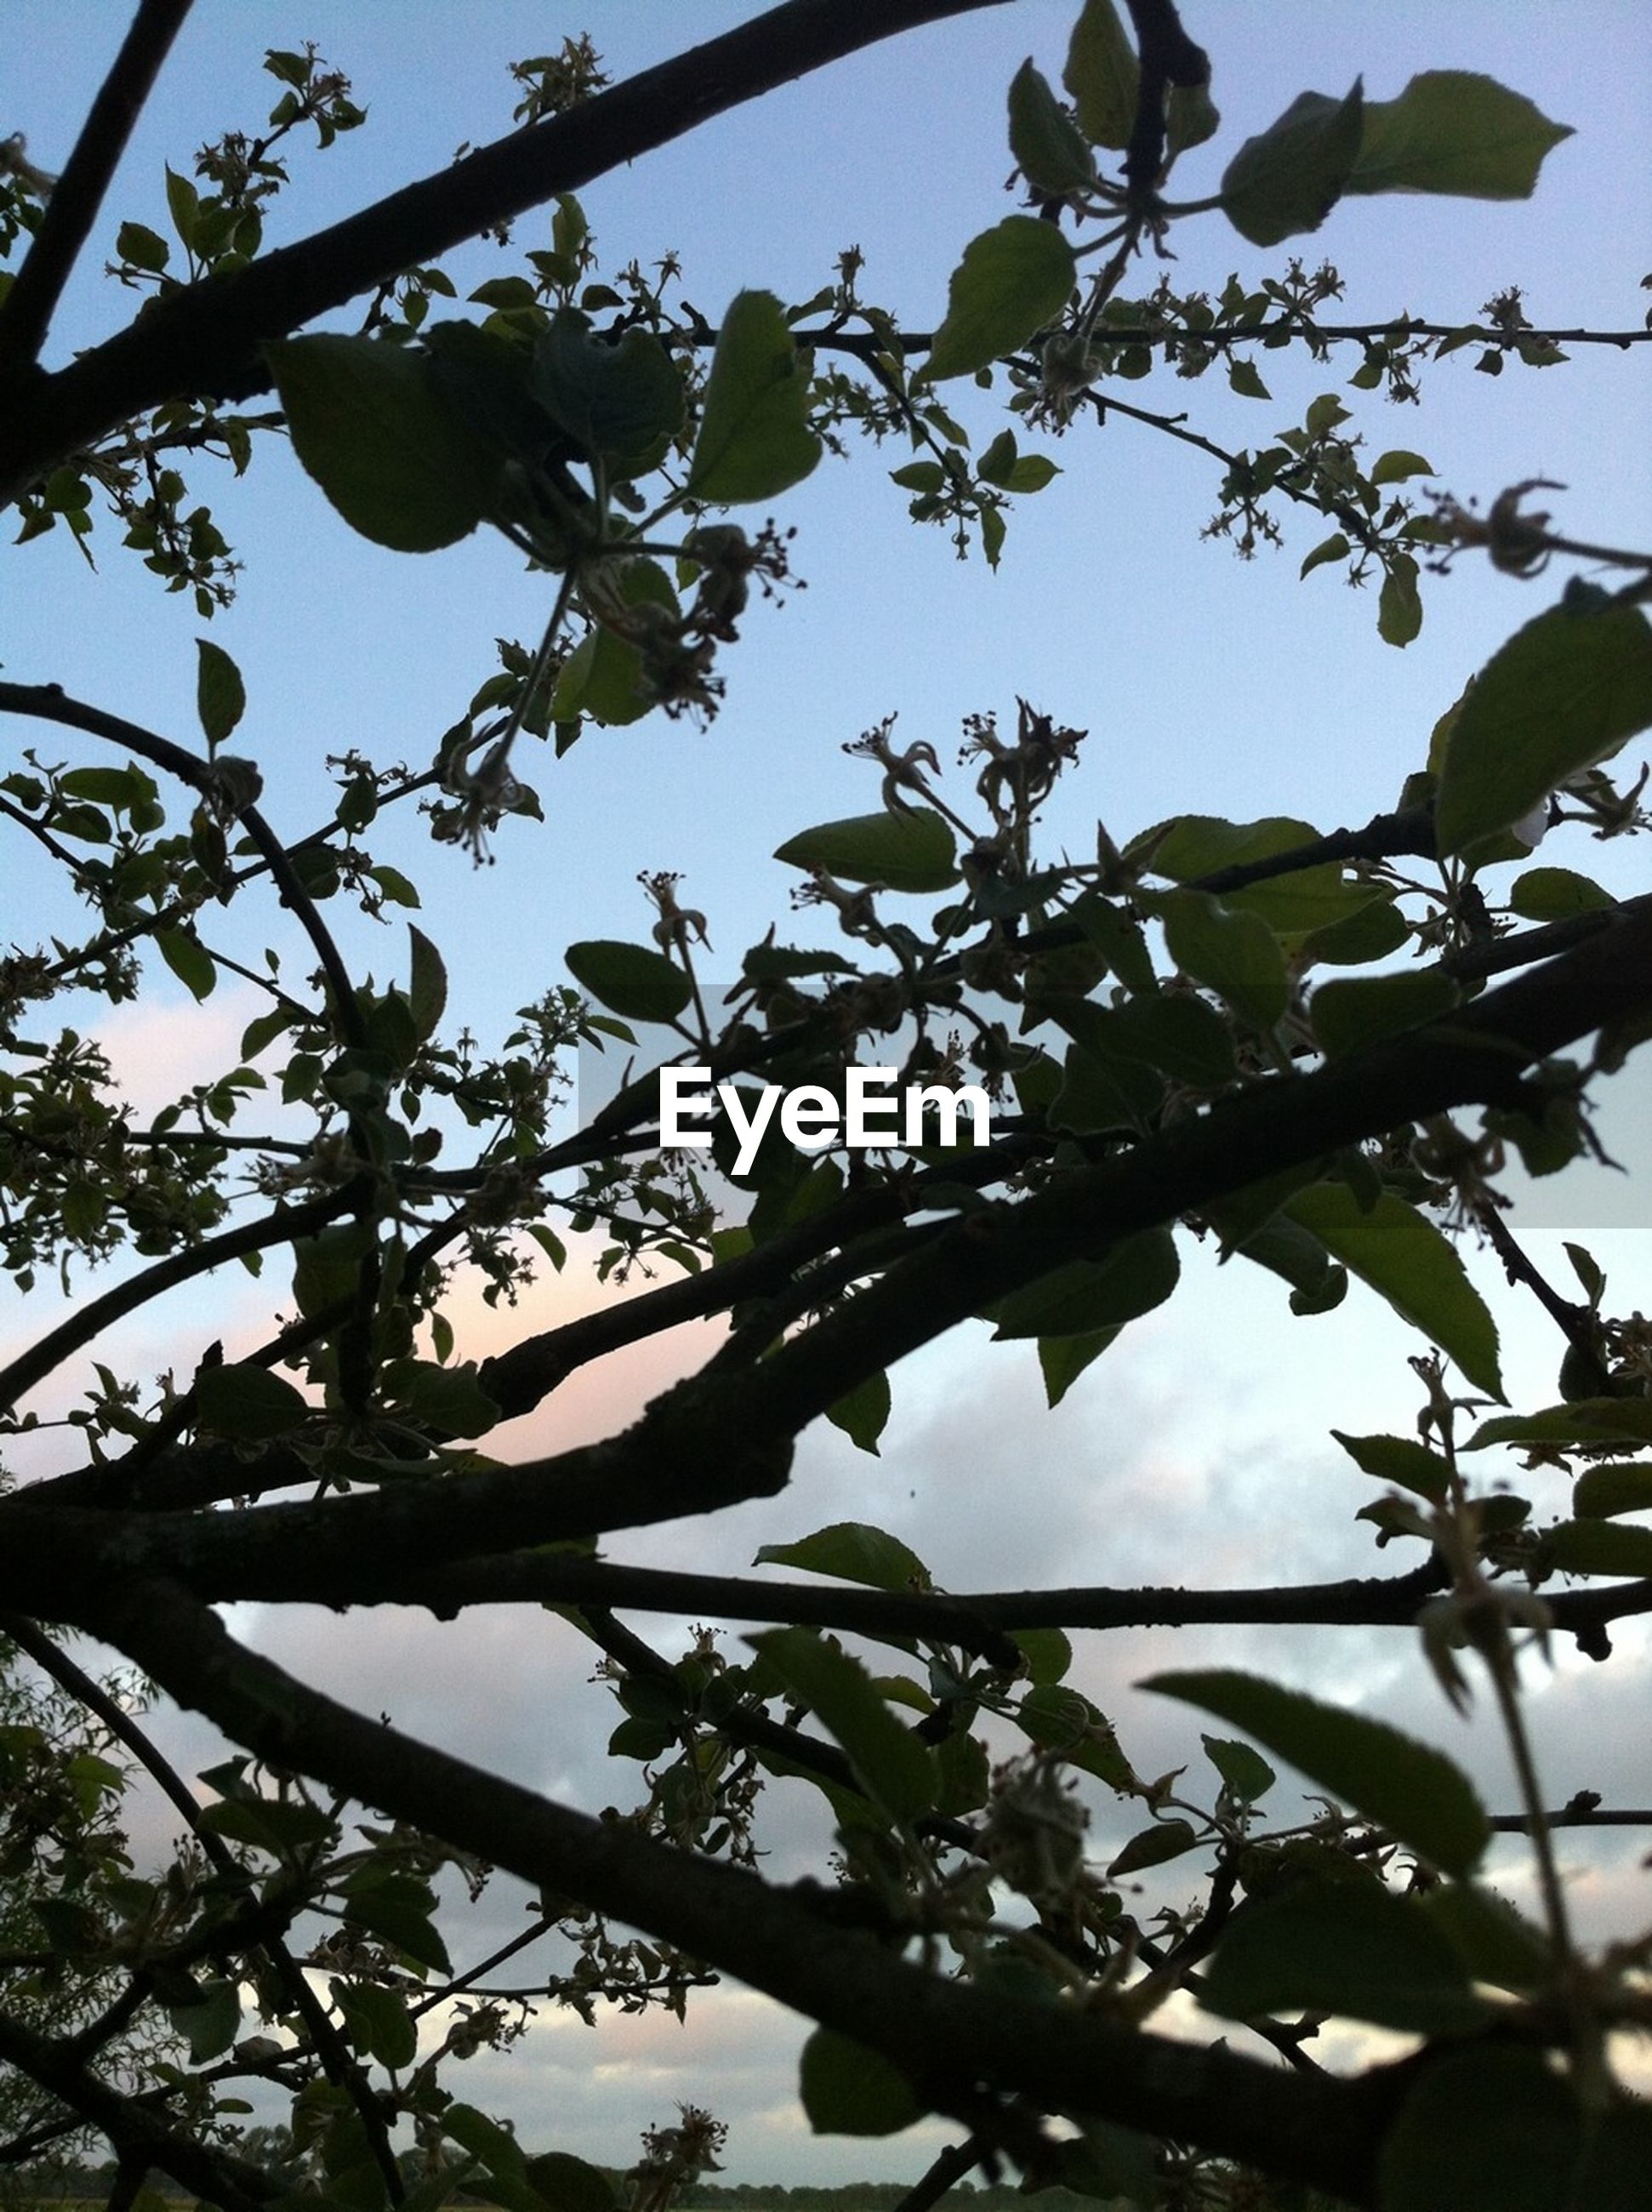 low angle view, branch, tree, sky, growth, leaf, nature, clear sky, beauty in nature, day, outdoors, no people, twig, high section, directly below, sunlight, close-up, blue, tranquility, focus on foreground